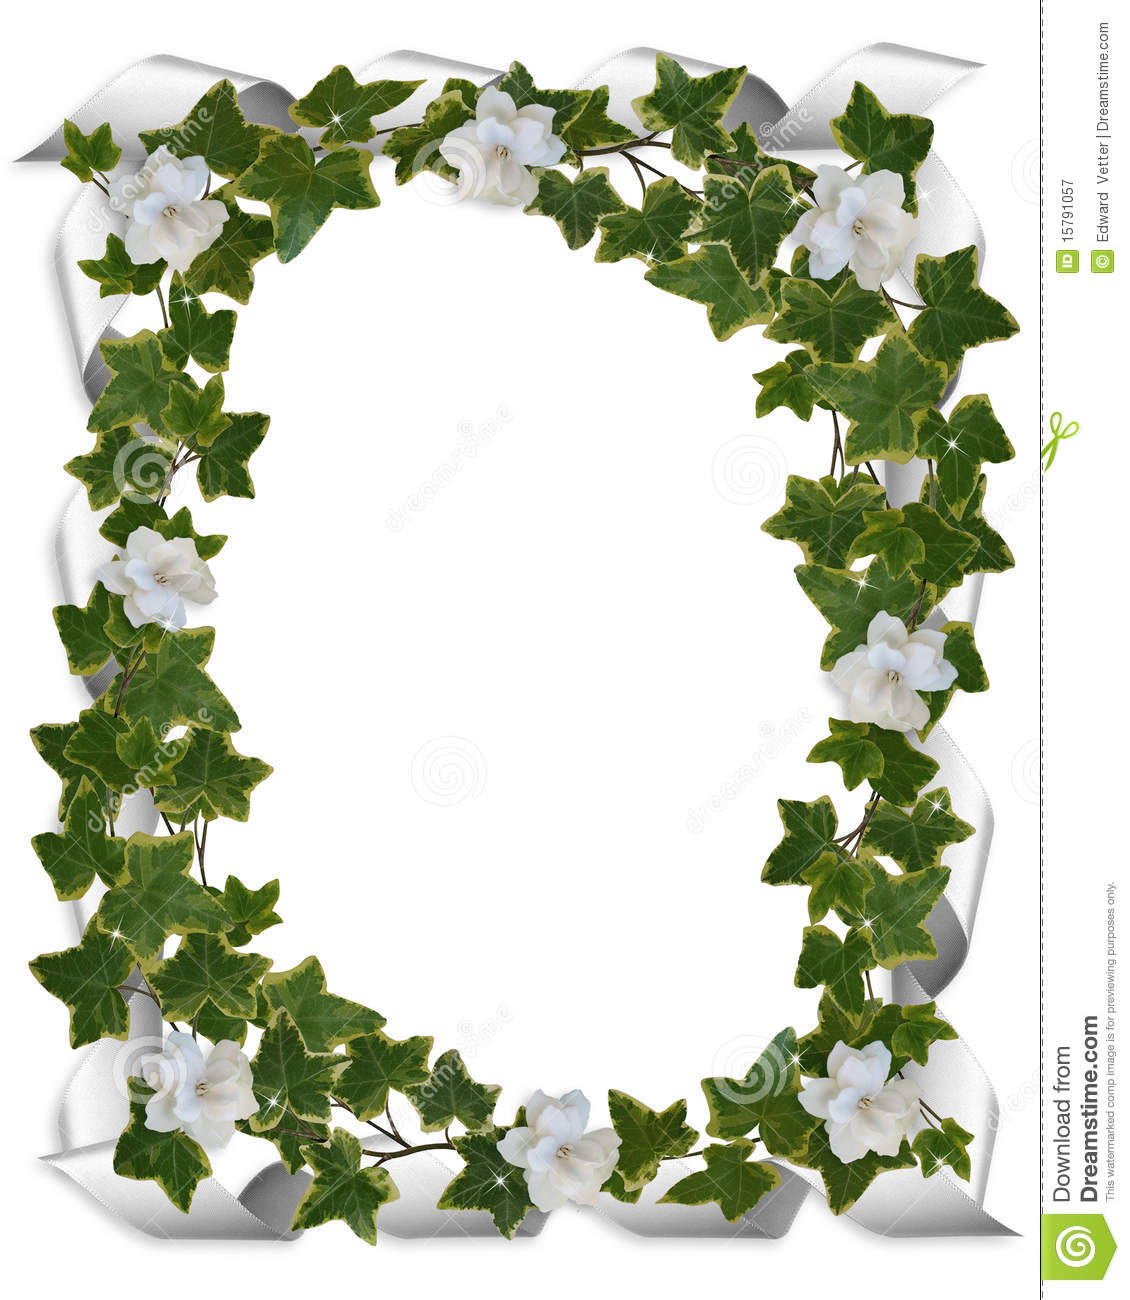 Ivy Border With Gardenias Royalty Free Stock Photography